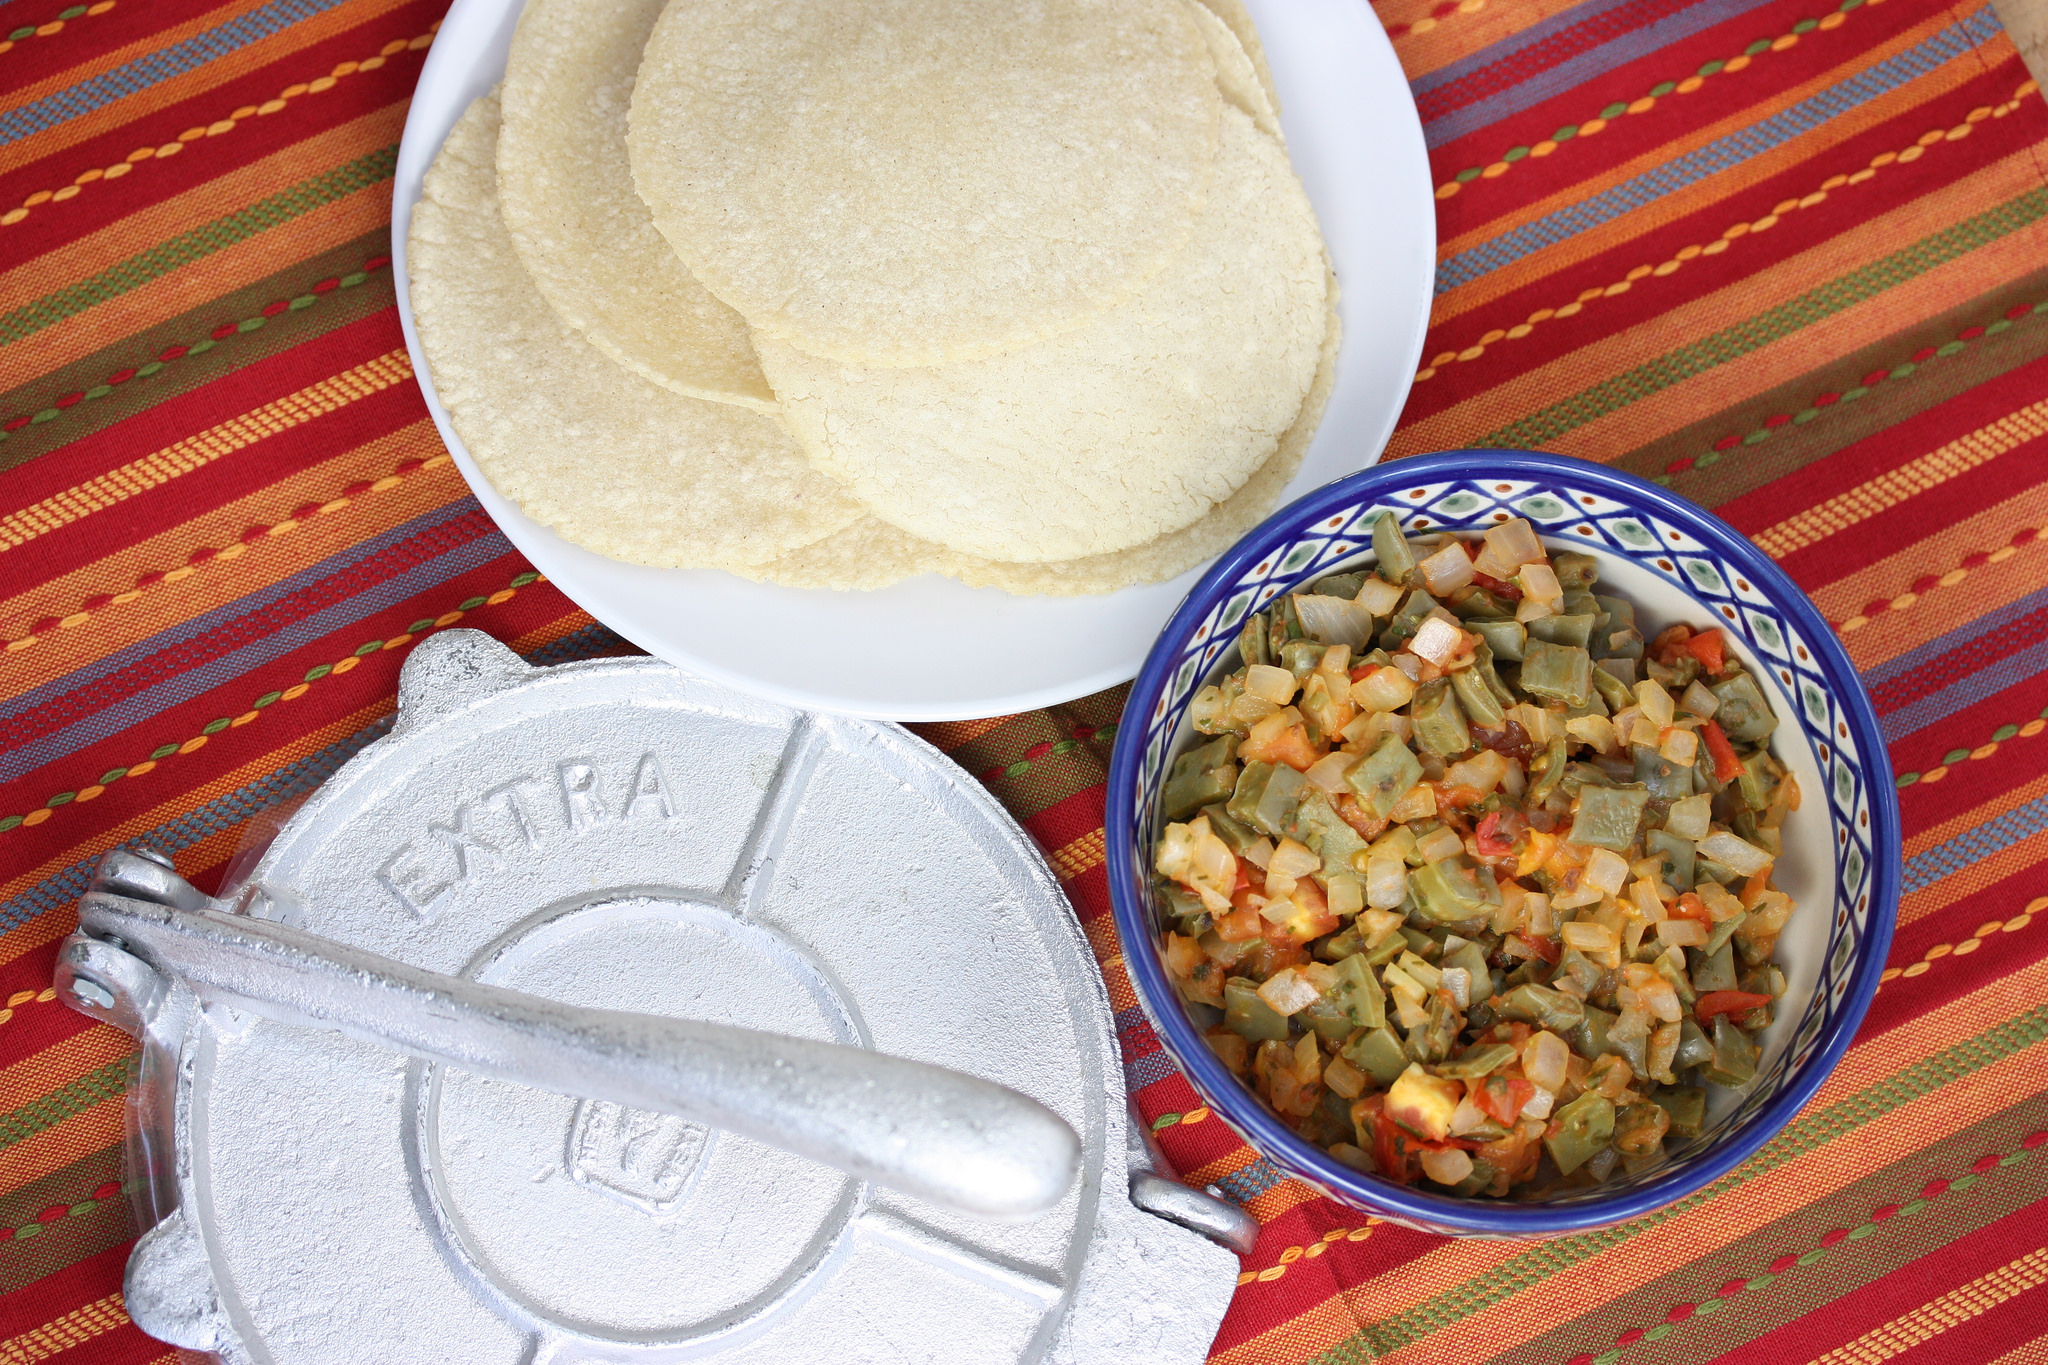 Tortilla Press Hispanic Kitchen Tools